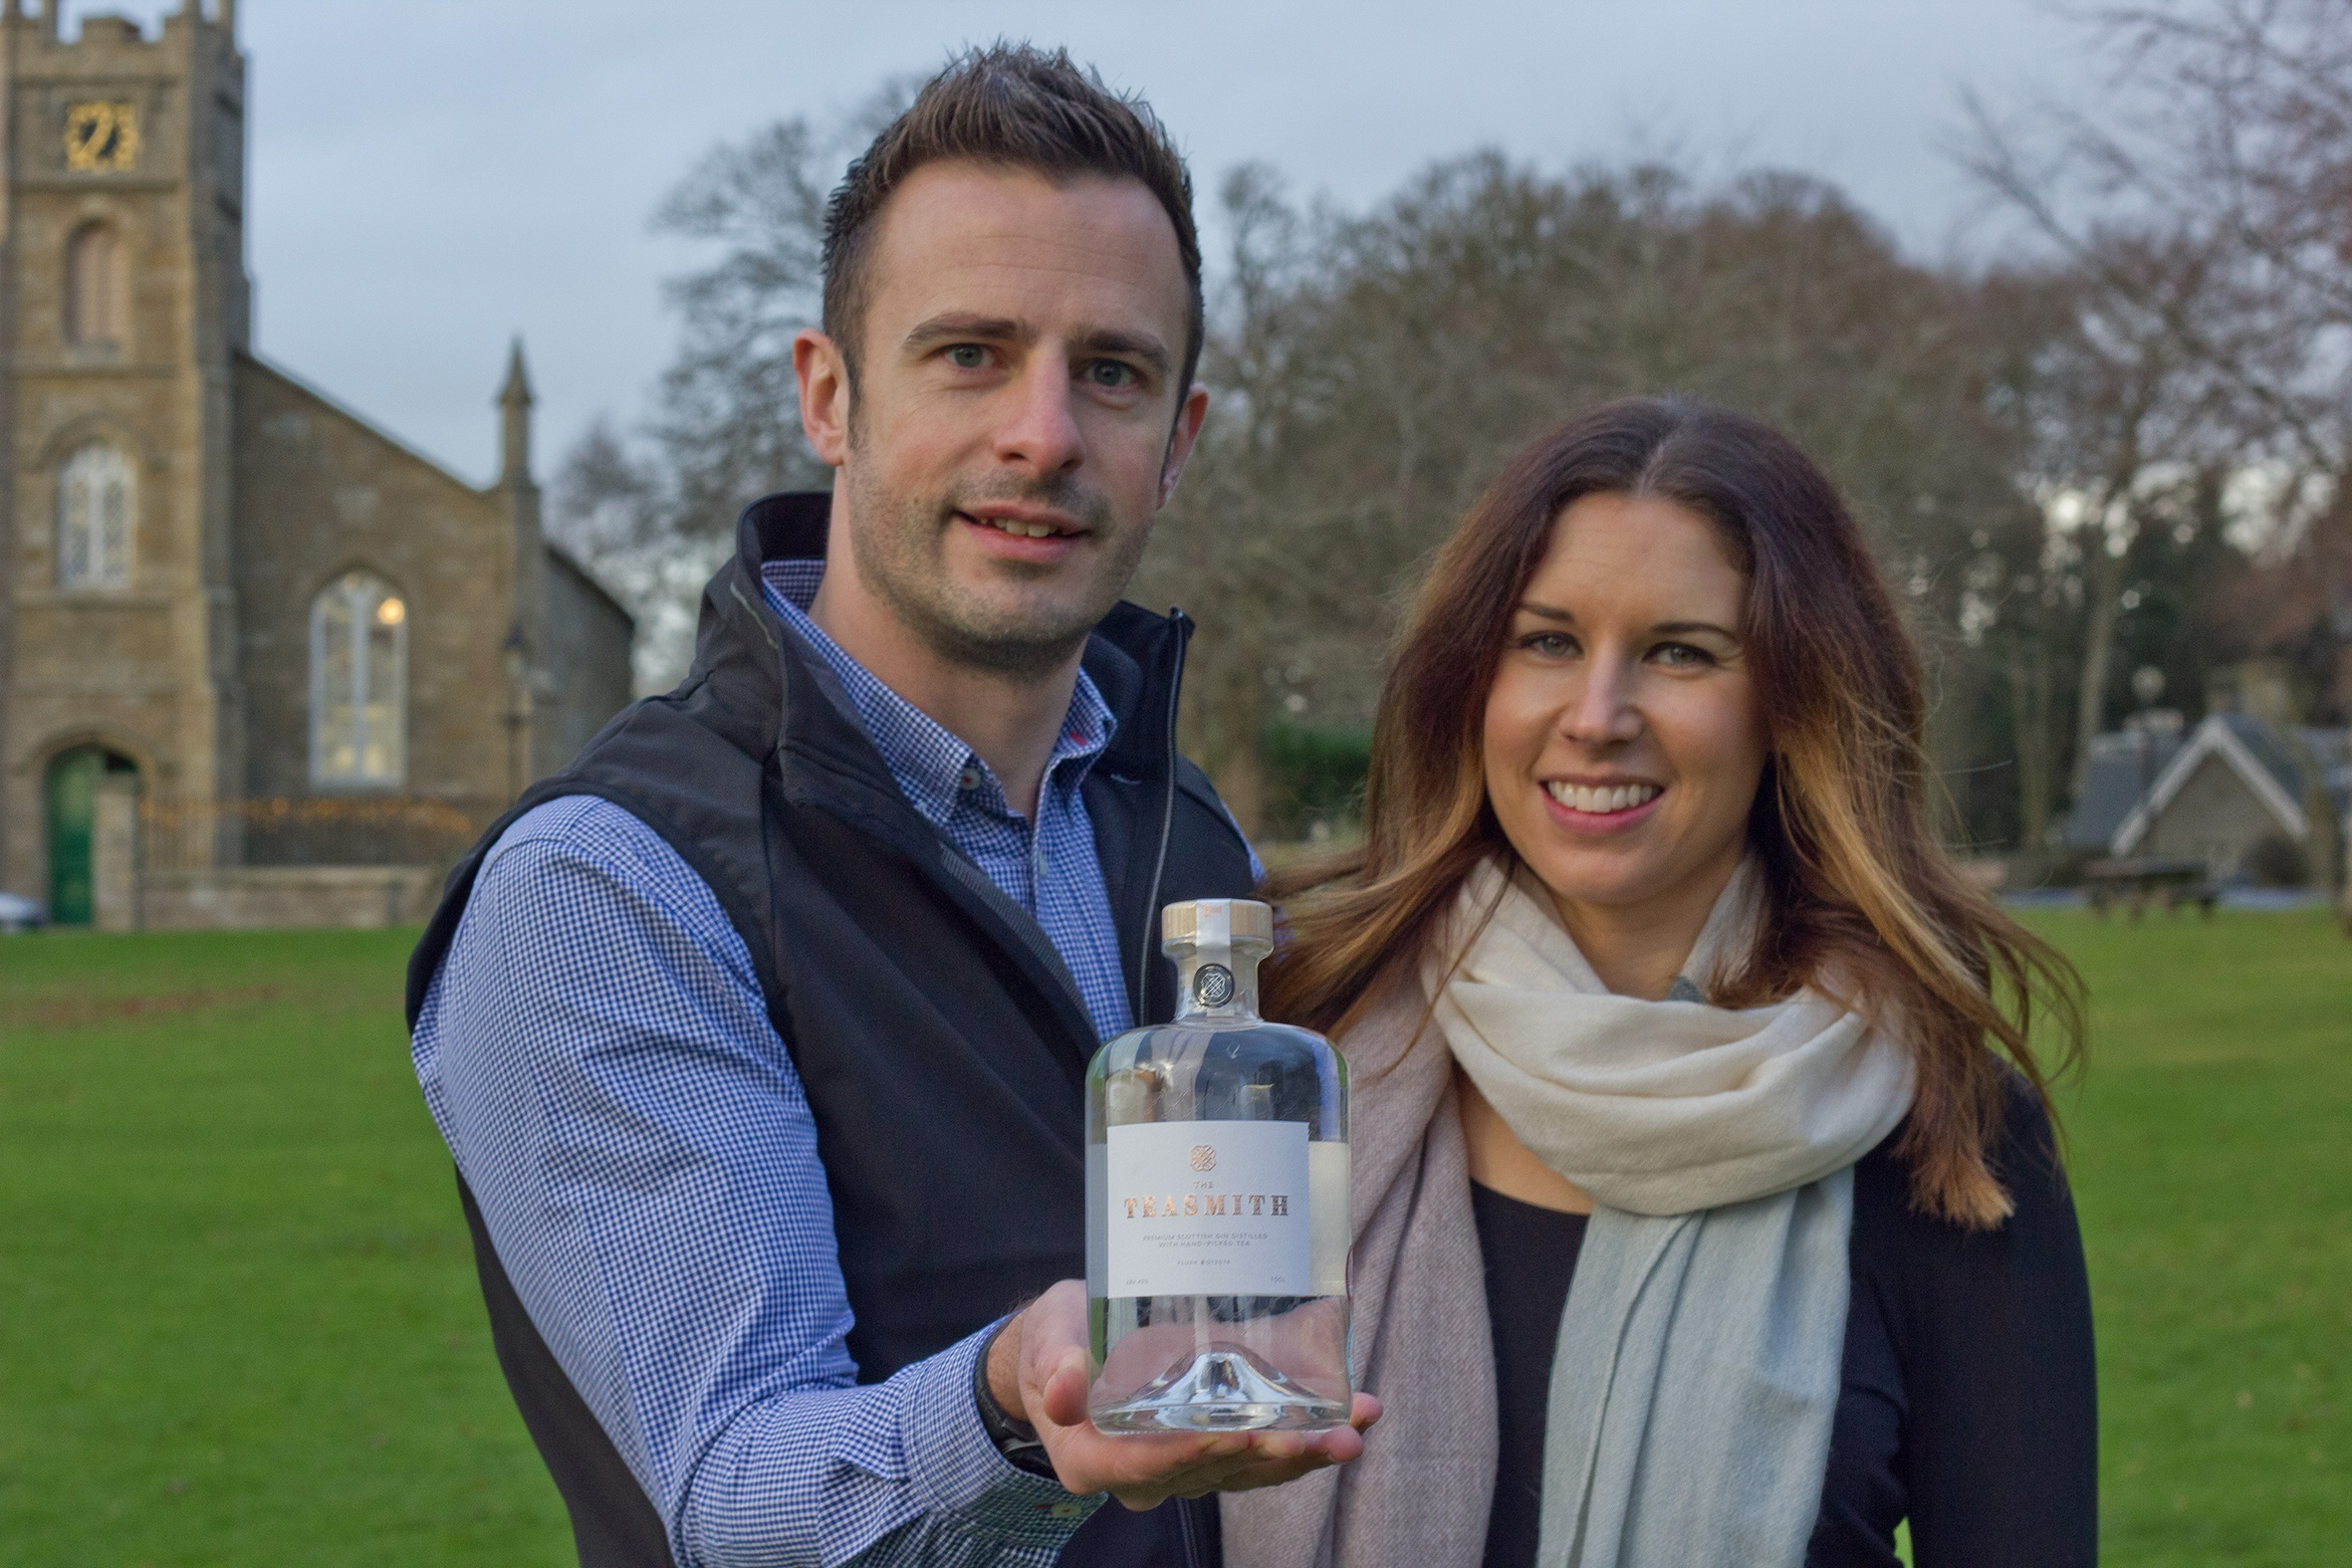 Teasmith Gin creators Nick and Emma Smalley, from Udny Green.